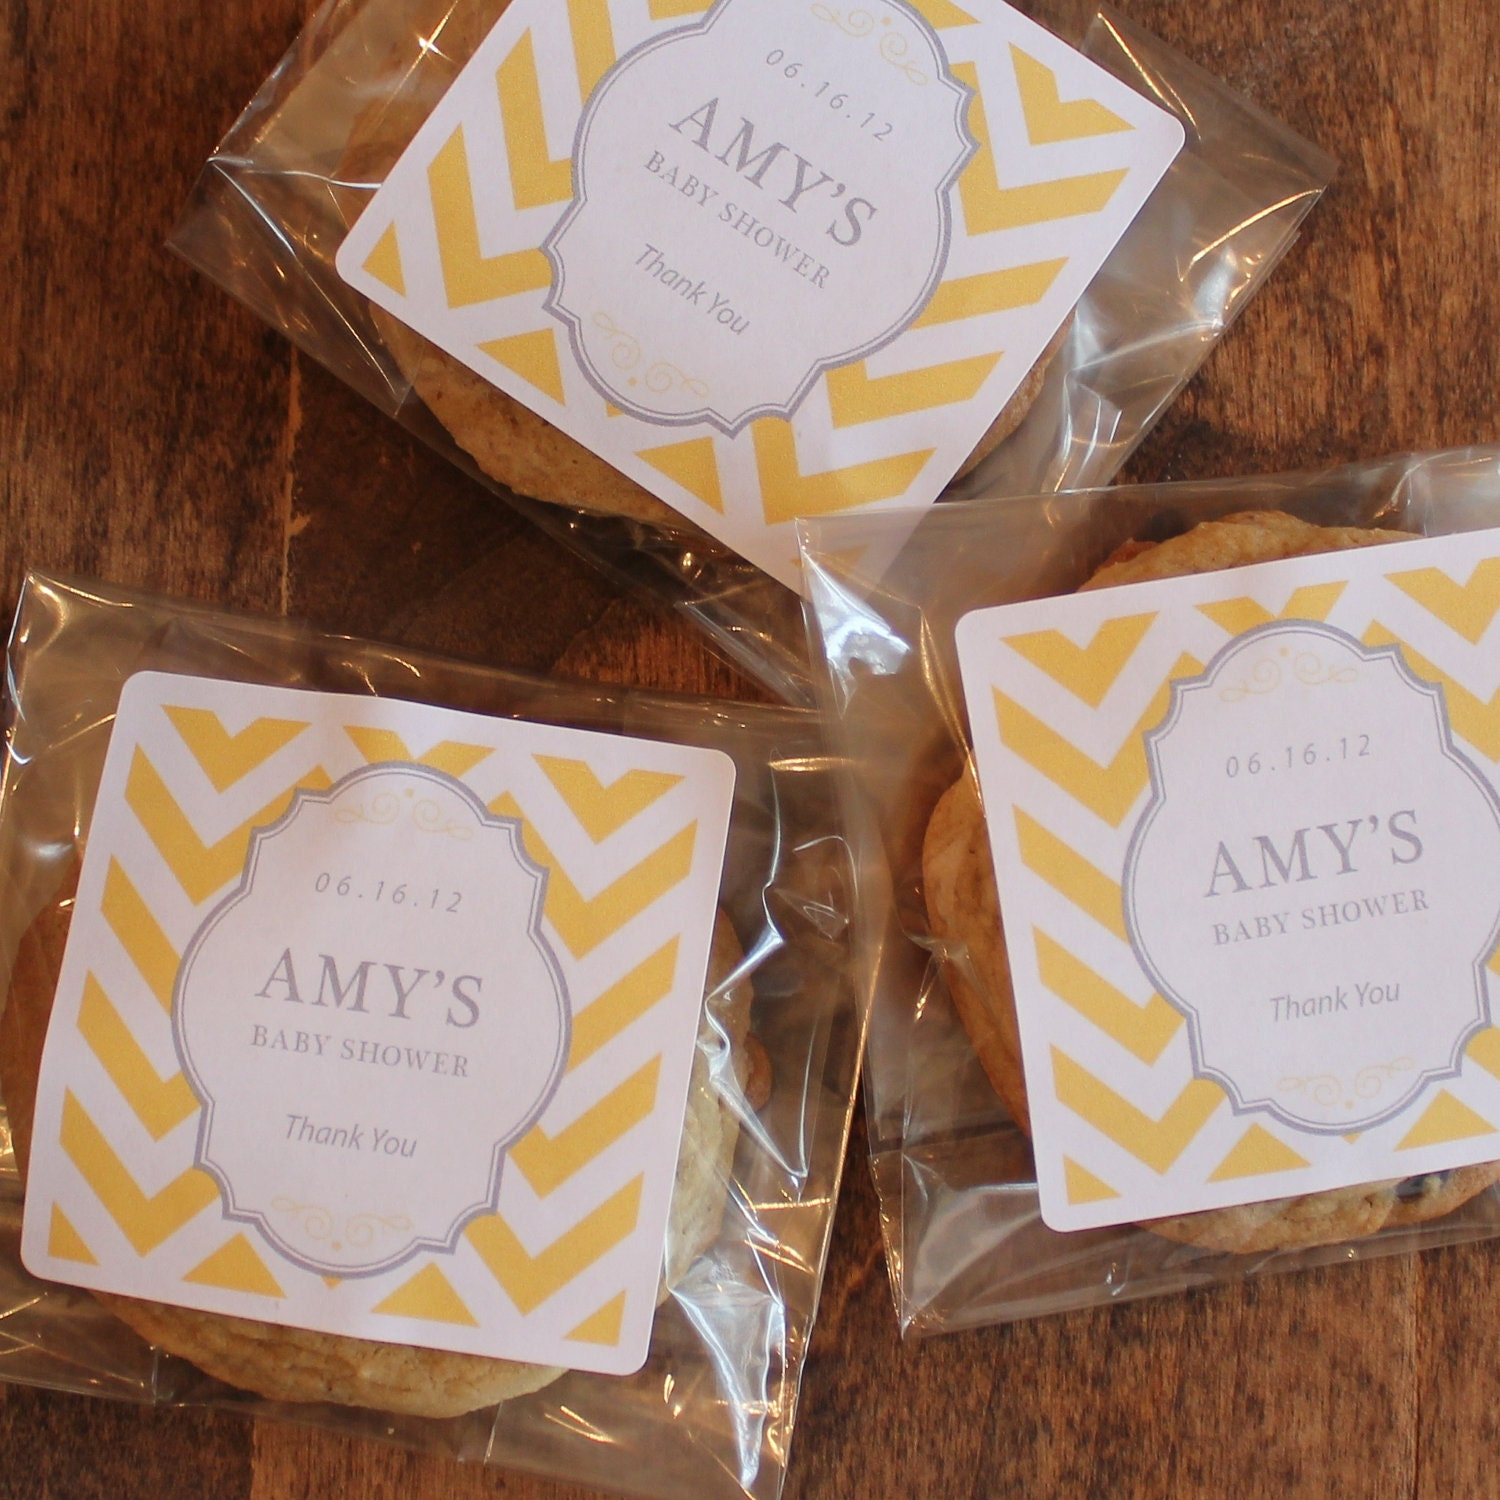 Personalized Wedding Favor Bags And Boxes : 24 Baby Shower Favor Bags with Personalized Chevron Label